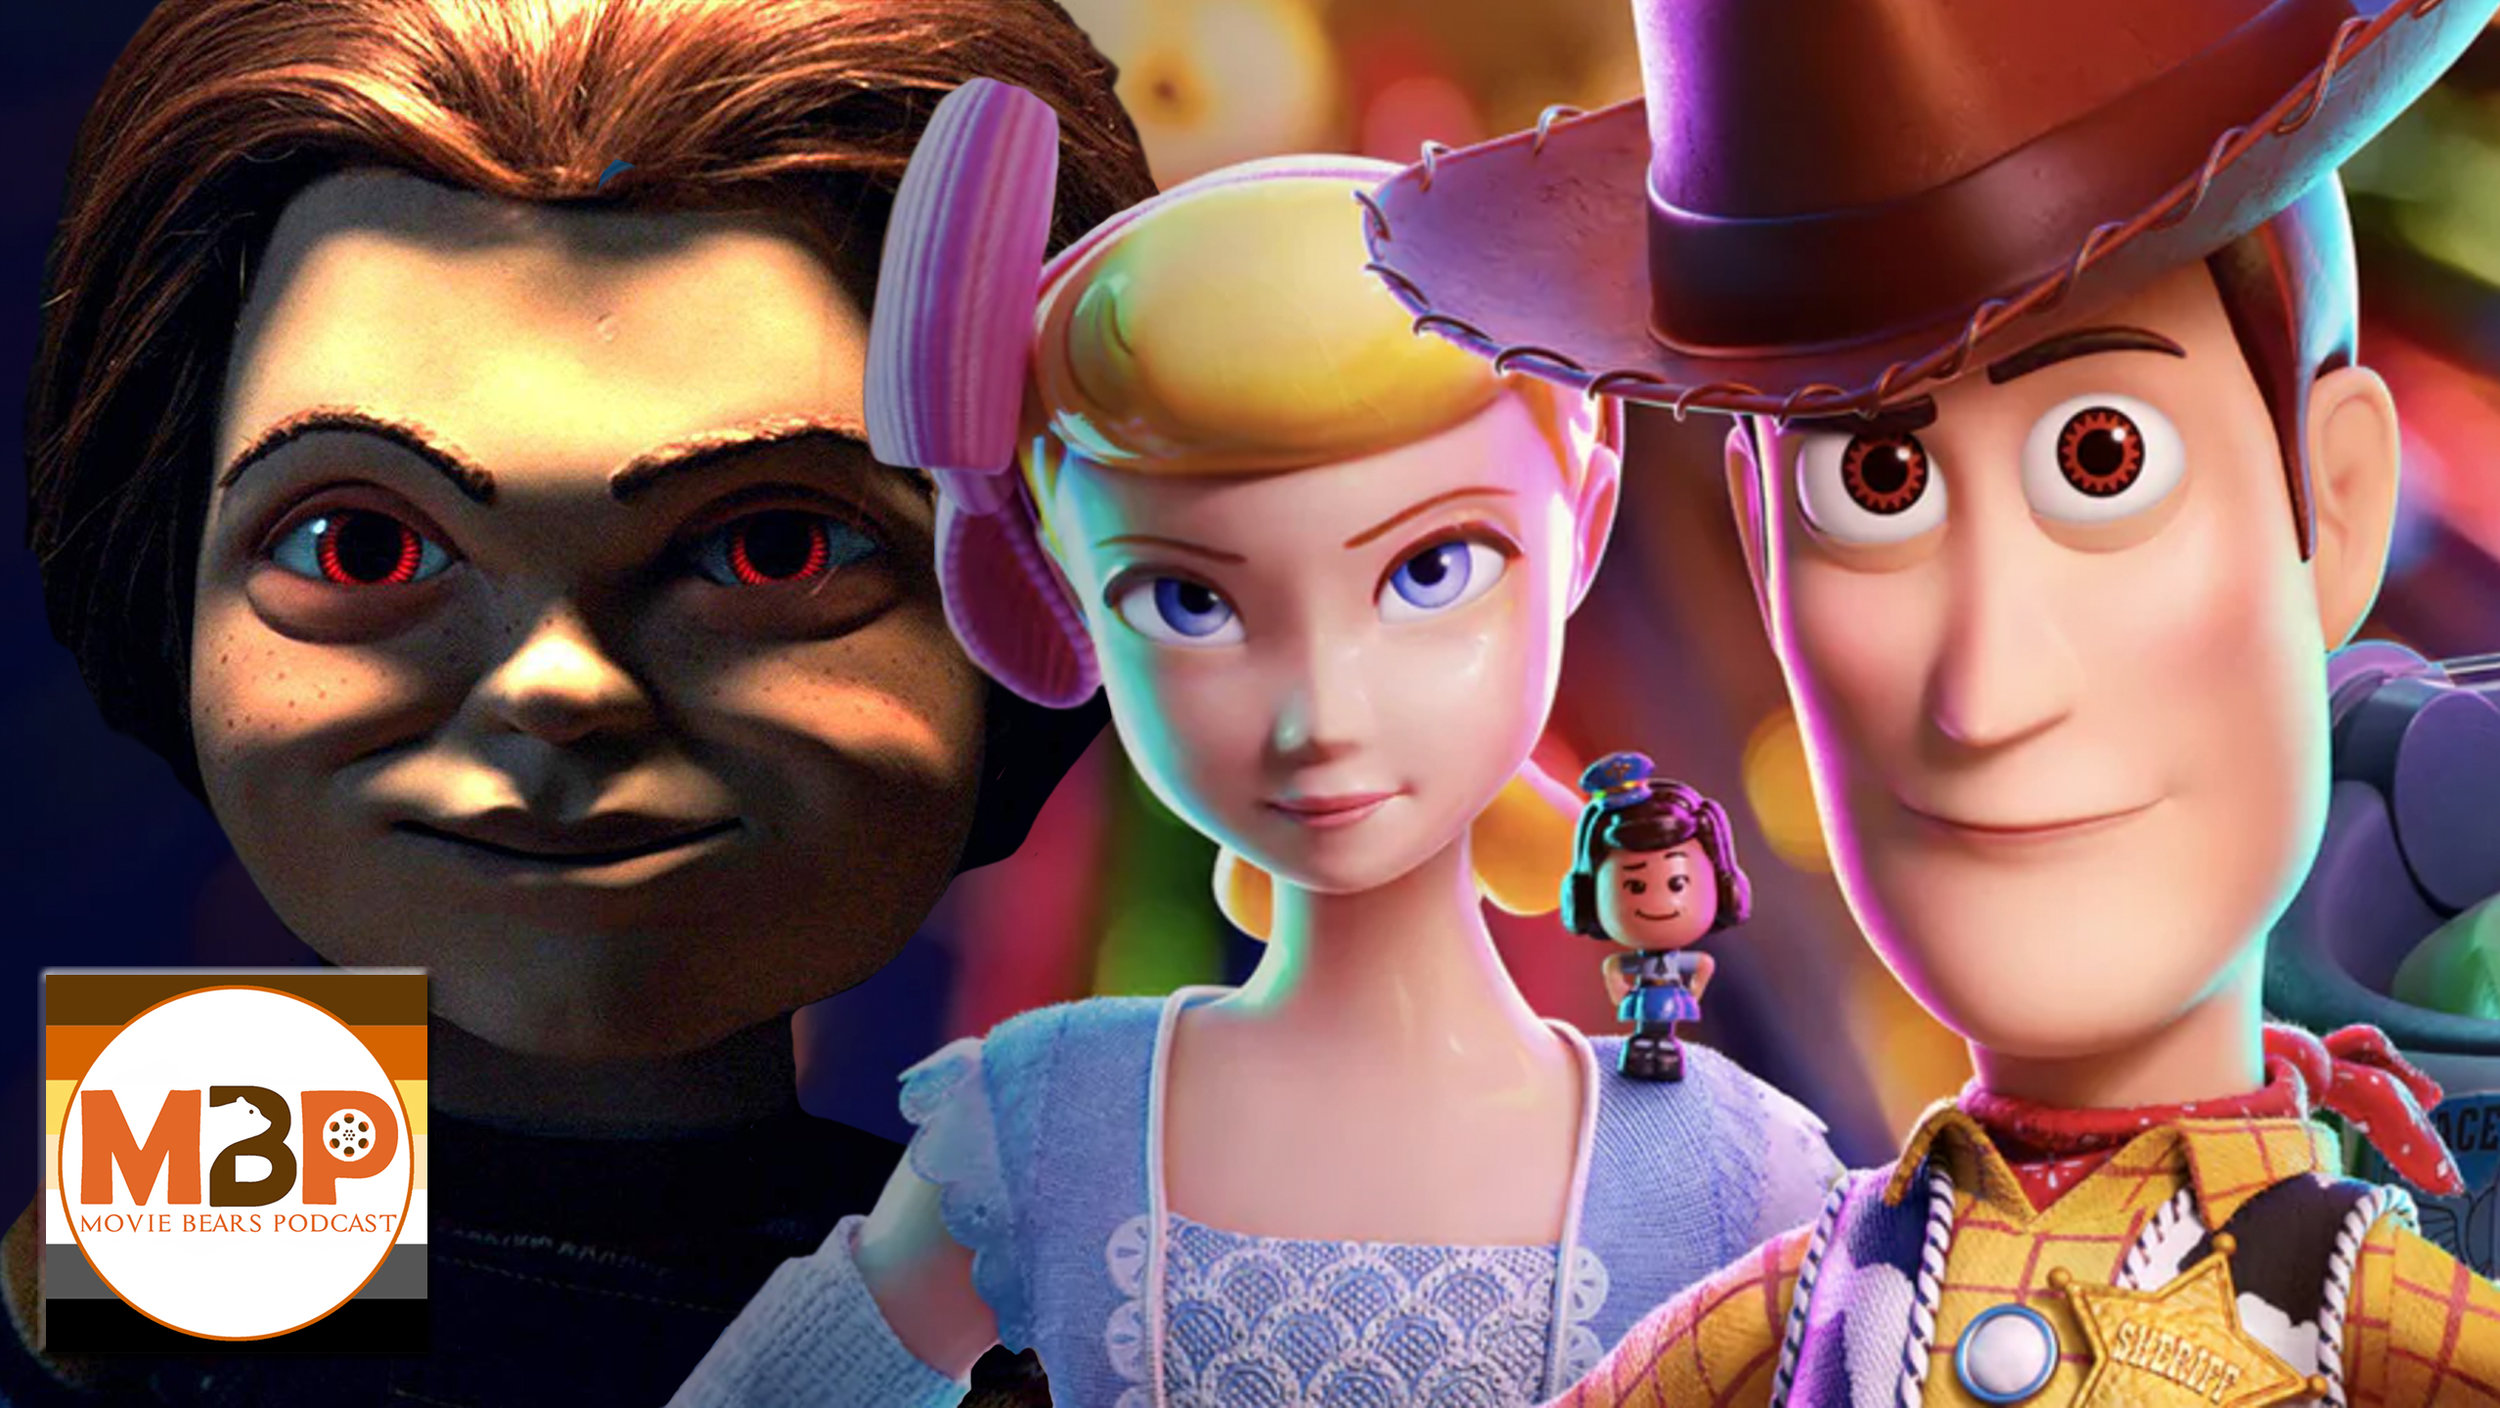 MBP e328 - 'Toy Story 4' and 'Child's Play' (6/25/19)    It's a toy-filled episode of the Movie Bears Podcast! (And, no, not like that!) On this episode, we review & discuss Pixar's TOY STORY 4 and the murderous reboot of CHILD'S PLAY. Did these fill us with child-like glee? Or should we stuff these back in the toy chest? Give us a listen to find out!